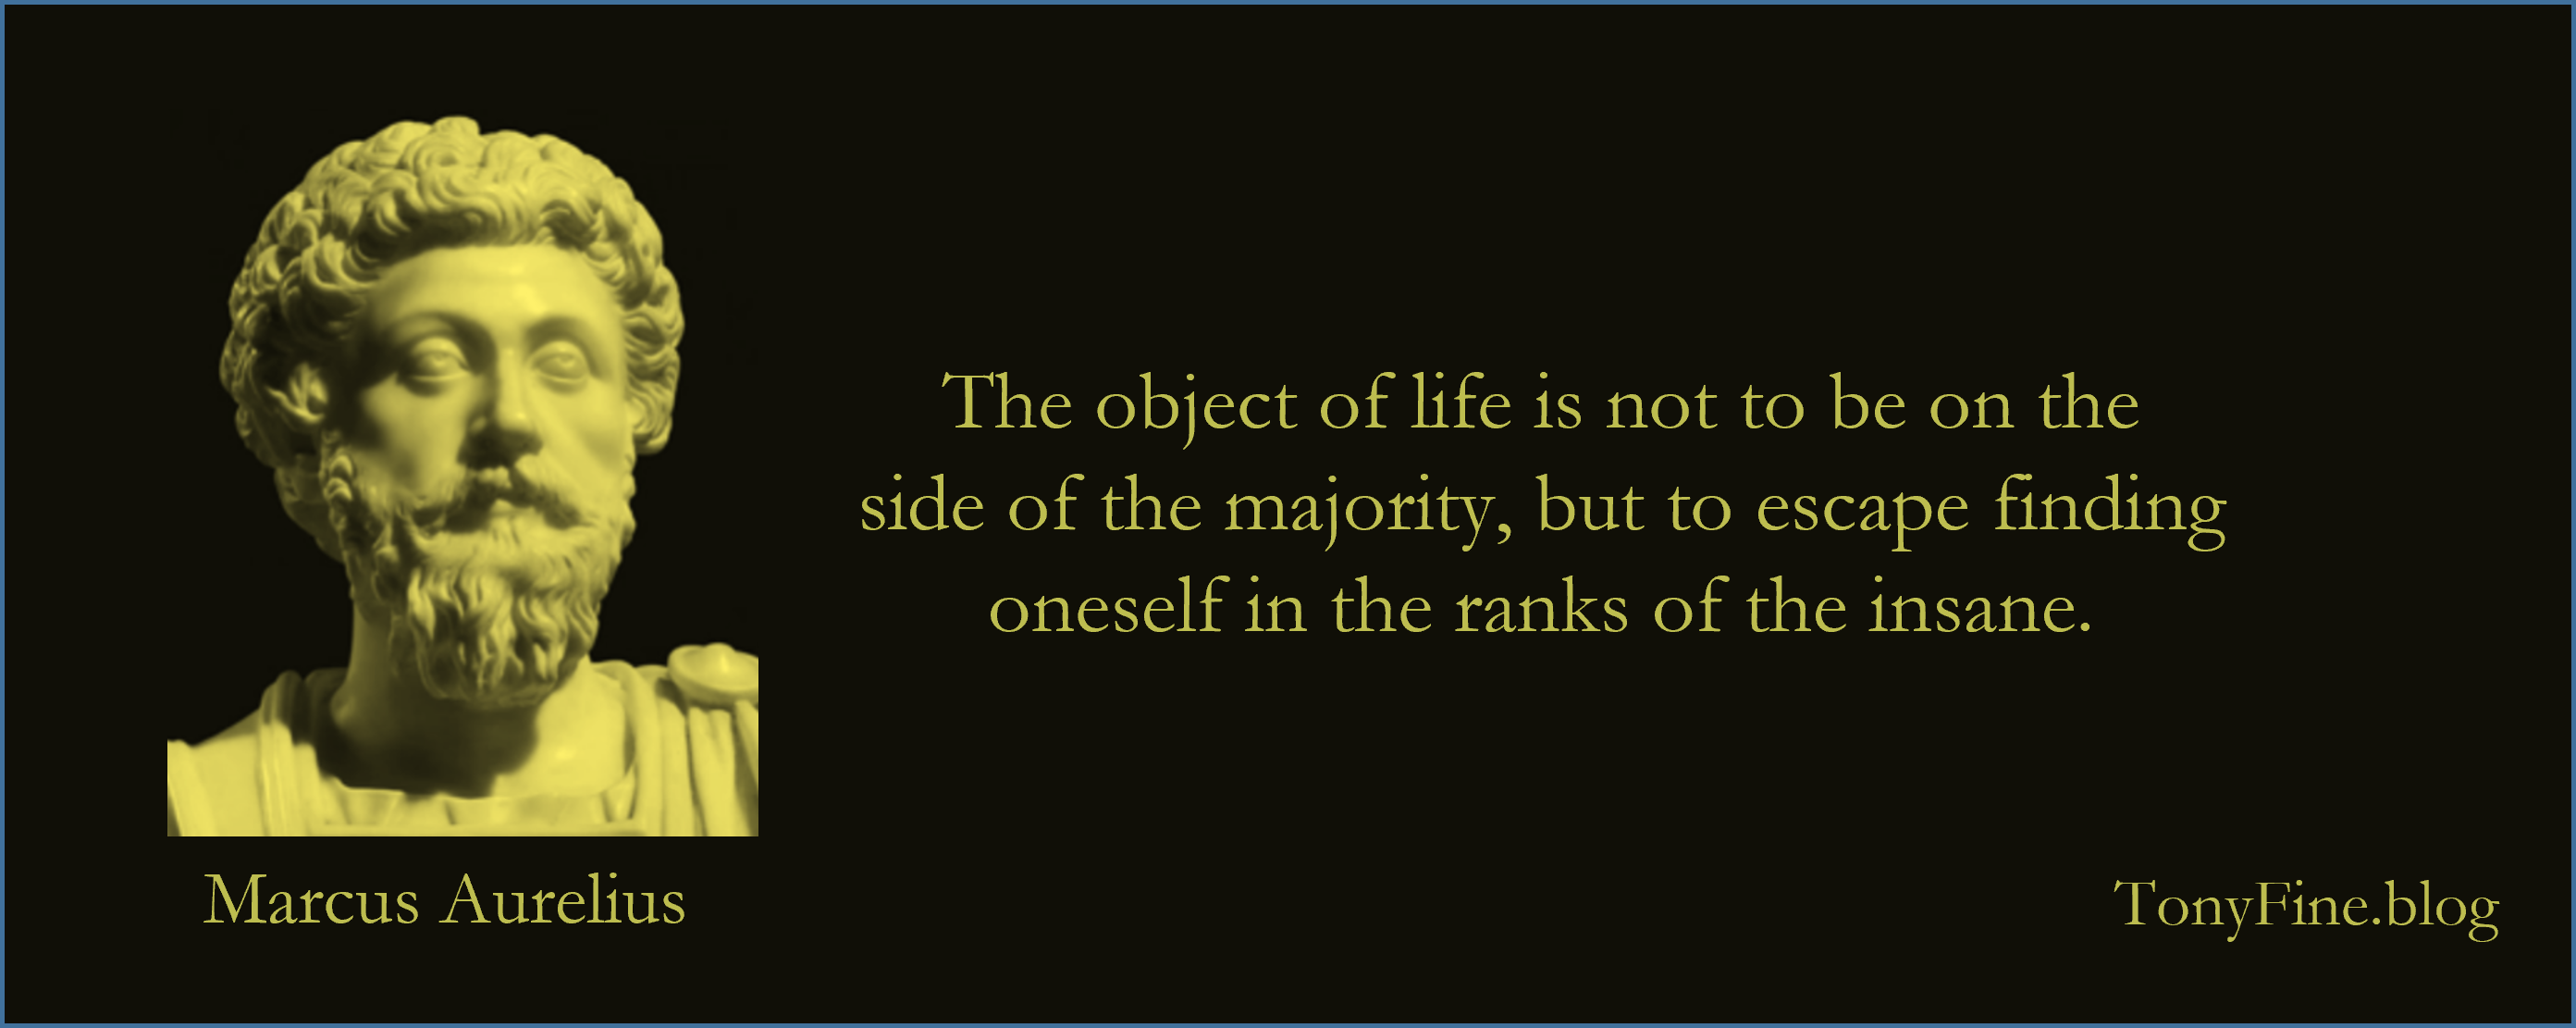 The object of life is not to be on the side of the majority, but to escape finding oneself in the ranks of the insane. -Marcus Aurelius